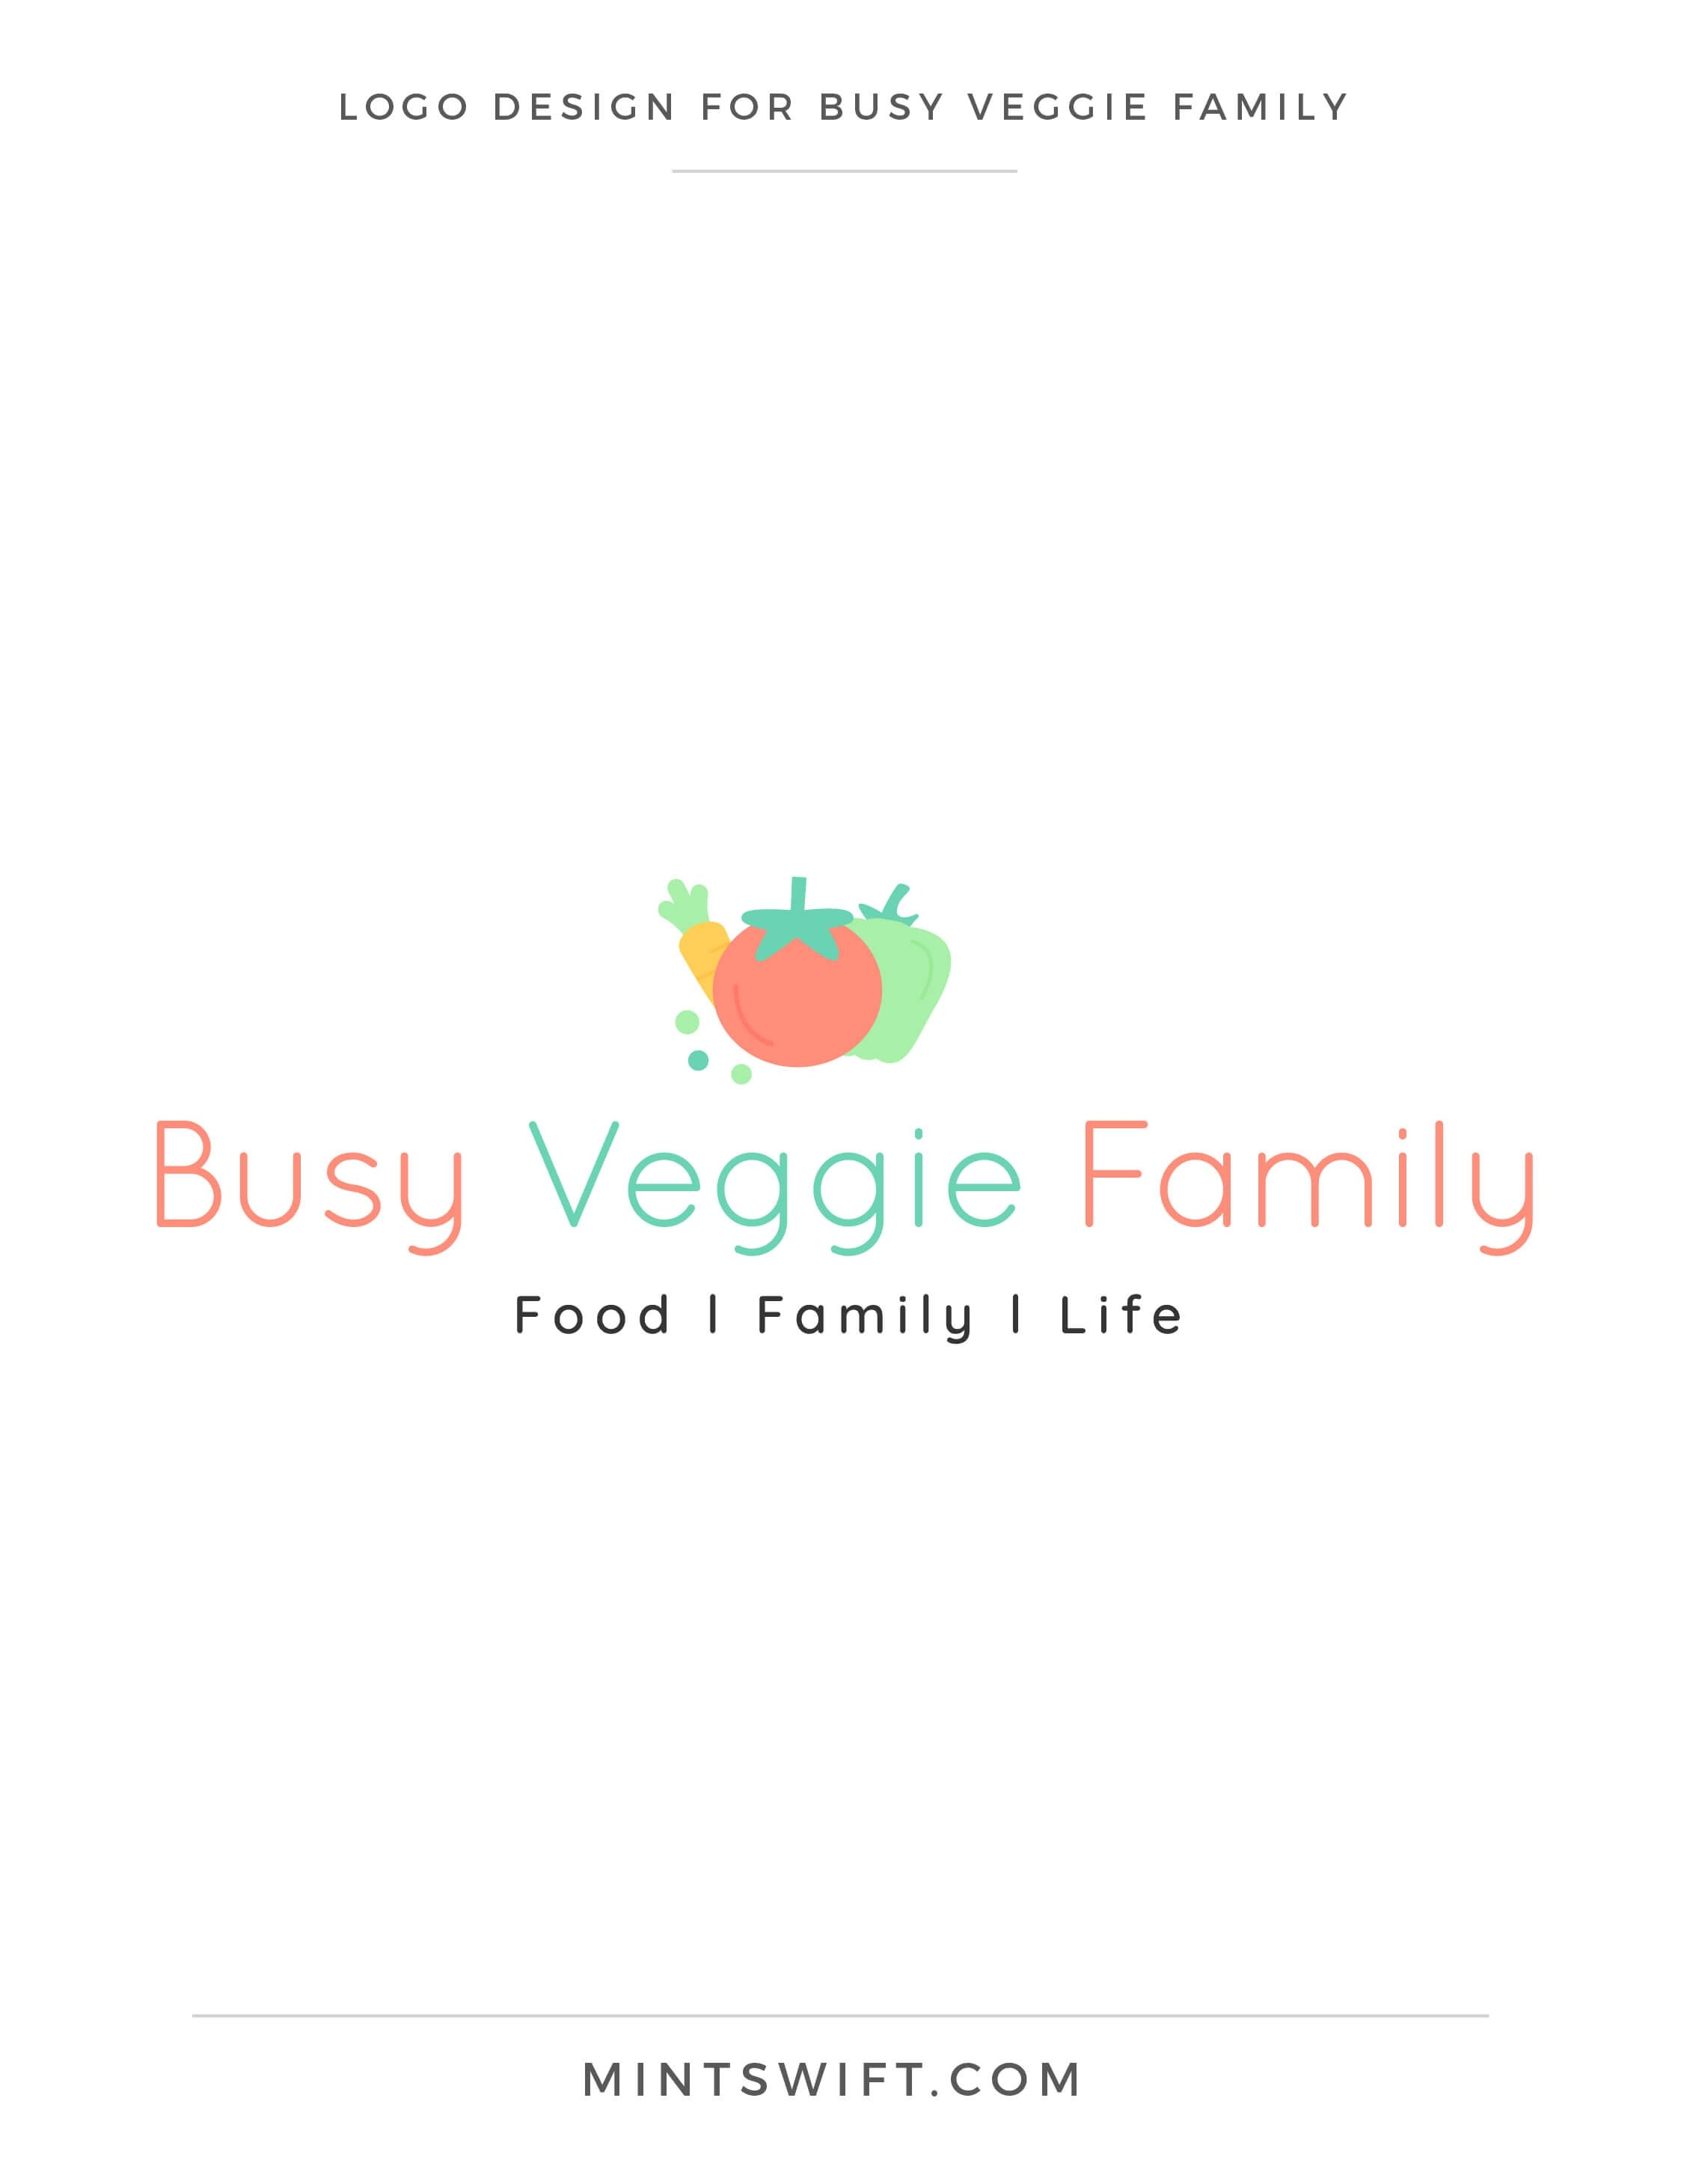 Busy Veggie Family - Logo Design - Brand & Website Design Package - MintSwift